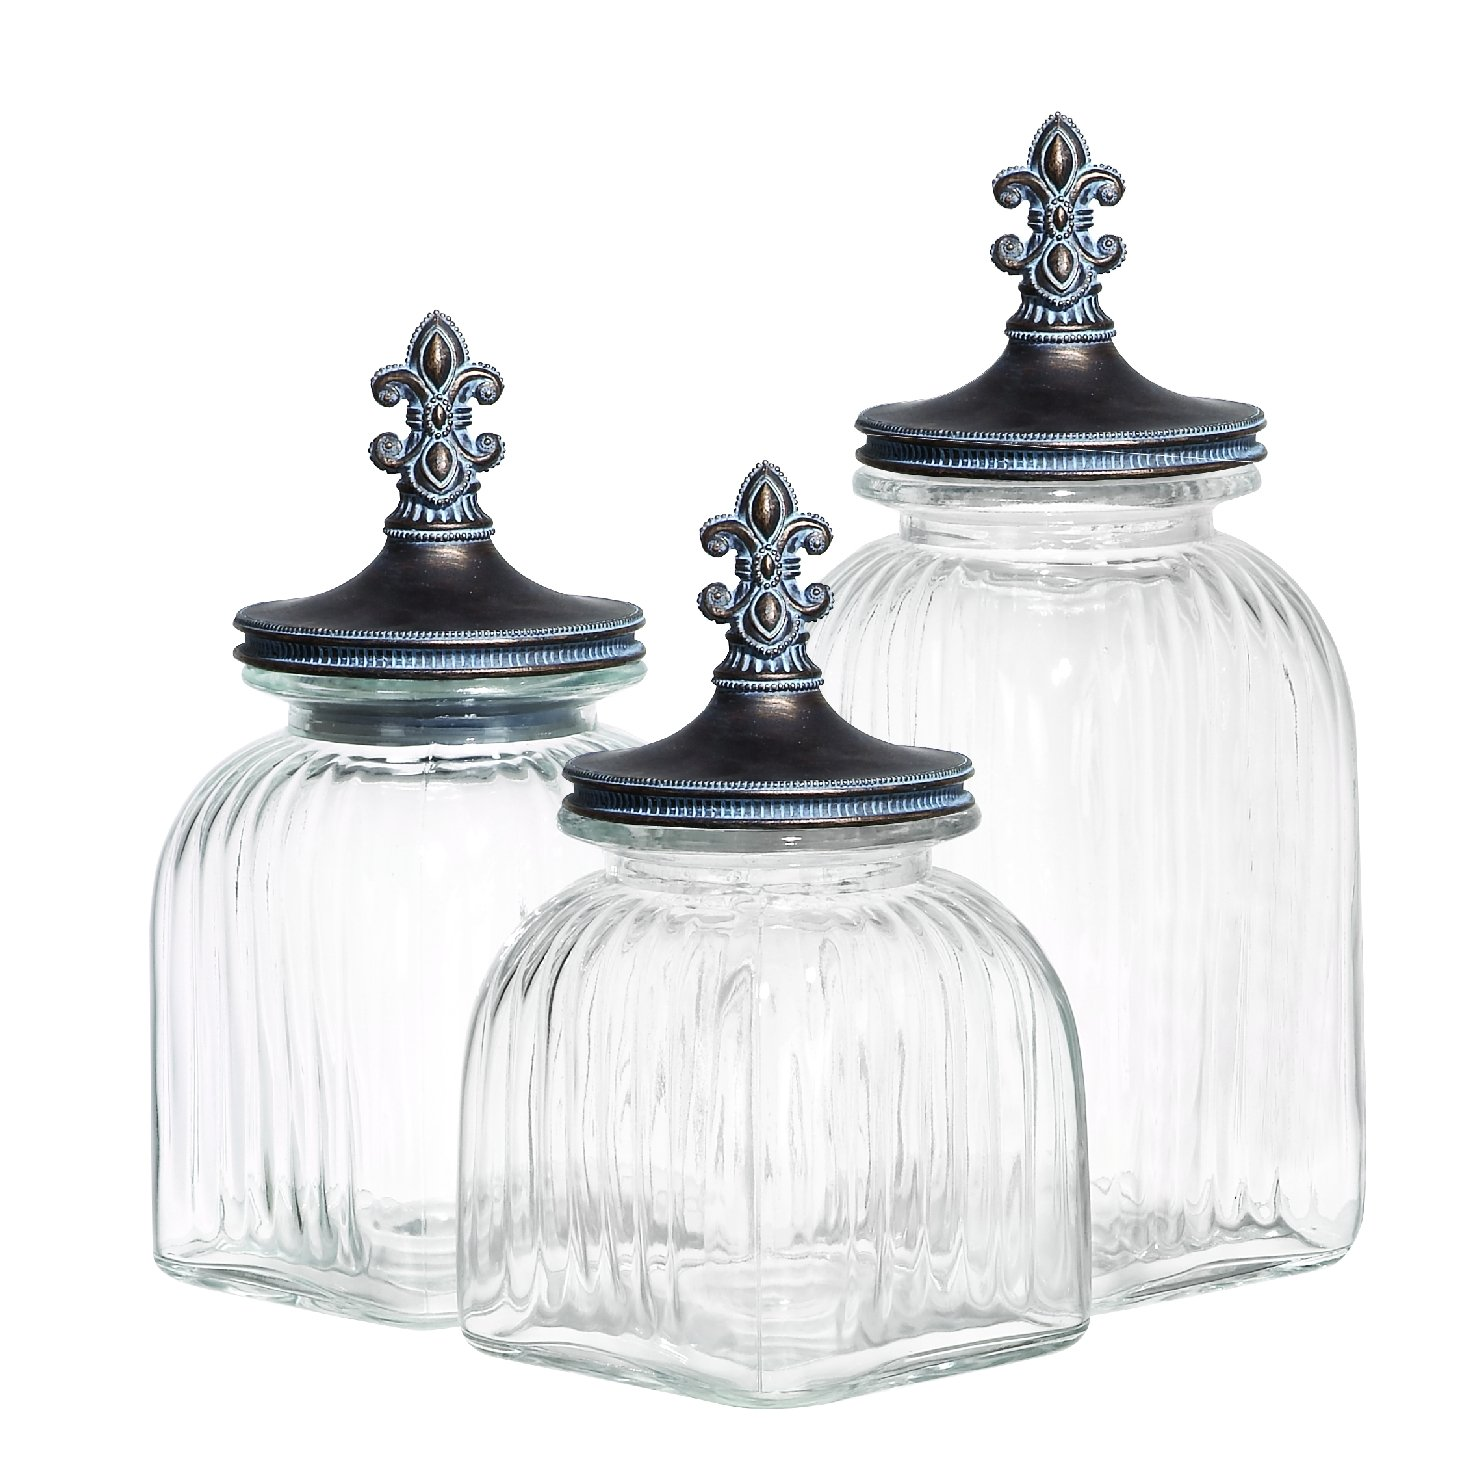 3 jars with finials